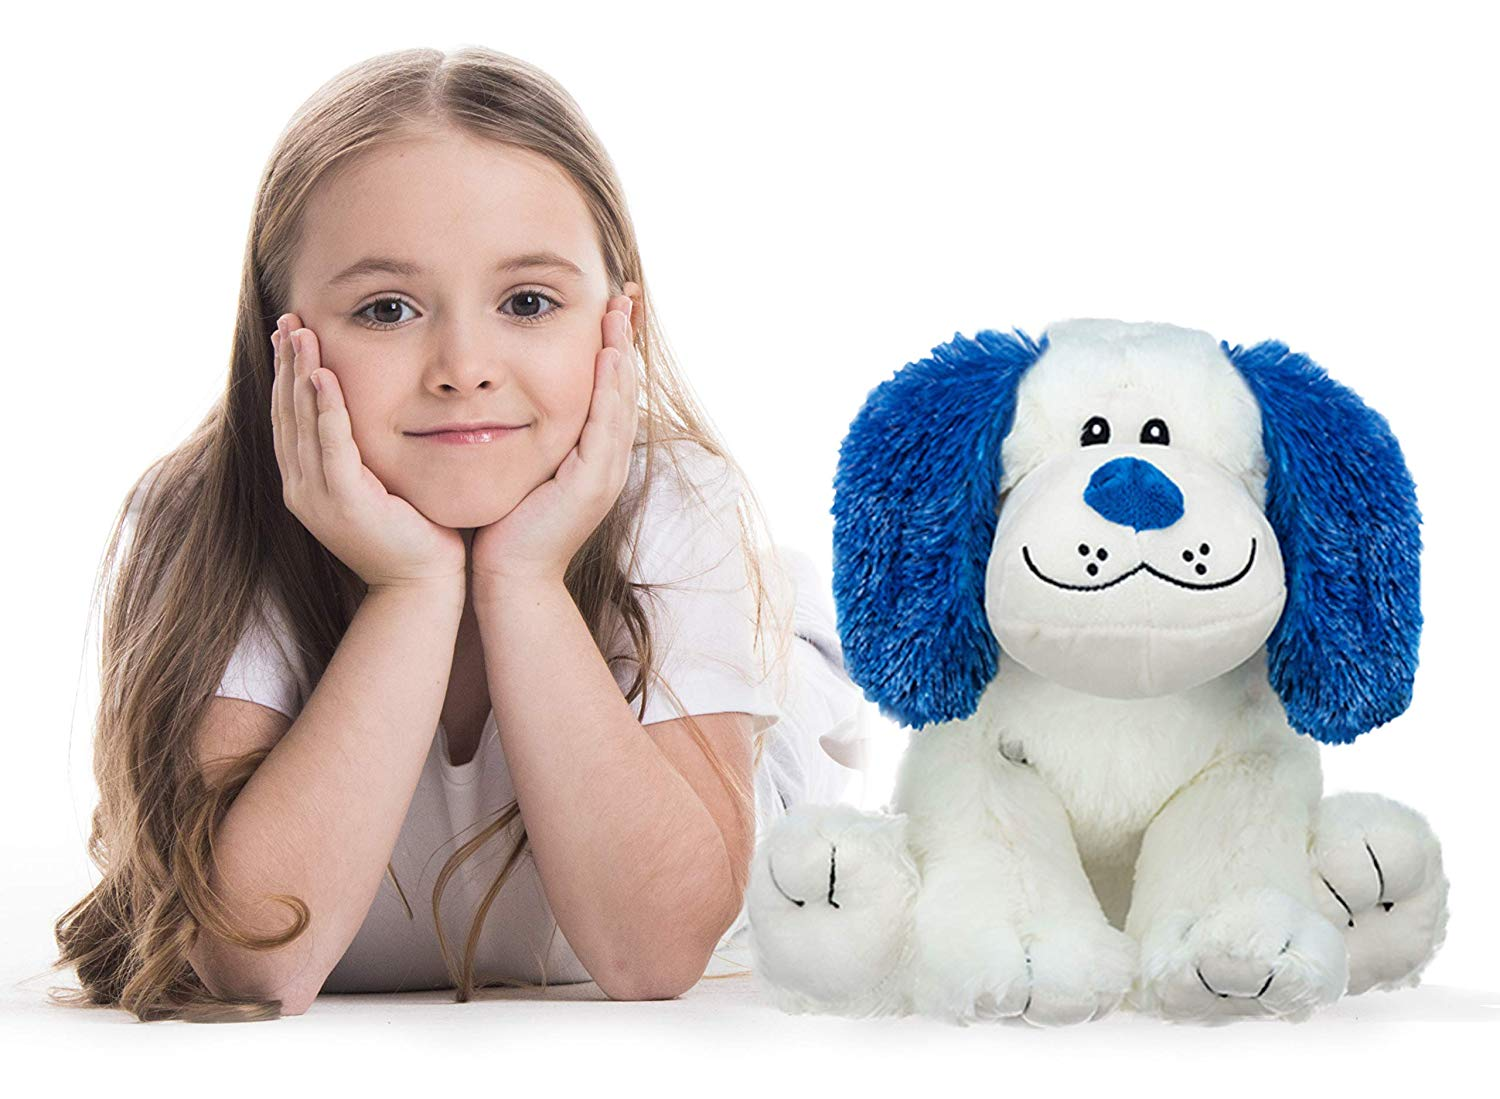 The Noodley LED Stuffed Animal Plush Light Up Toy. Kids love all things that light up! We designed this 4 color changing stuffed puppy dog to come to life with multi-colored LED lights that soothe children with fears of the dark. 2020 Valentine's Day Gift Guide from Jays Sweet N Sour Life Blog.